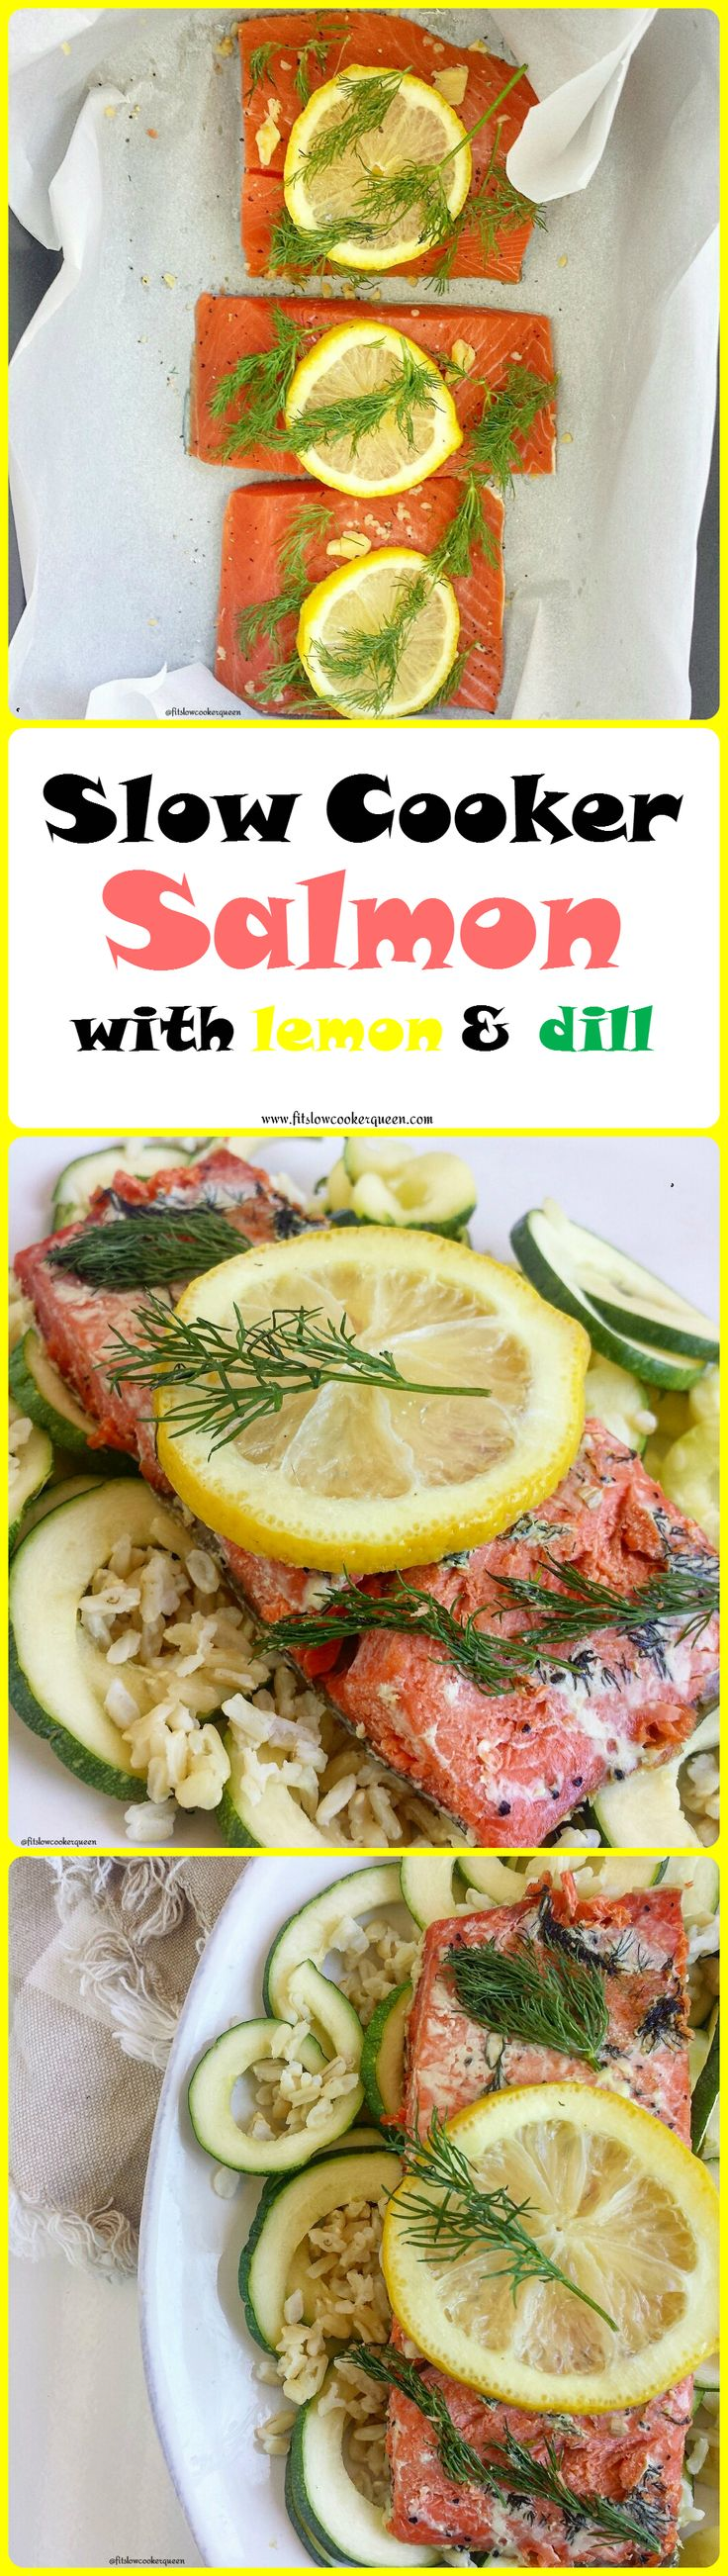 Healthy slow cooker / crockpot recipe -  Cooking salmon in the slow cooker produces perfectly cooked salmon with minimal effort. With less than 5 ingredients, this recipe is both healthy (whole 30, paleo) & easy.